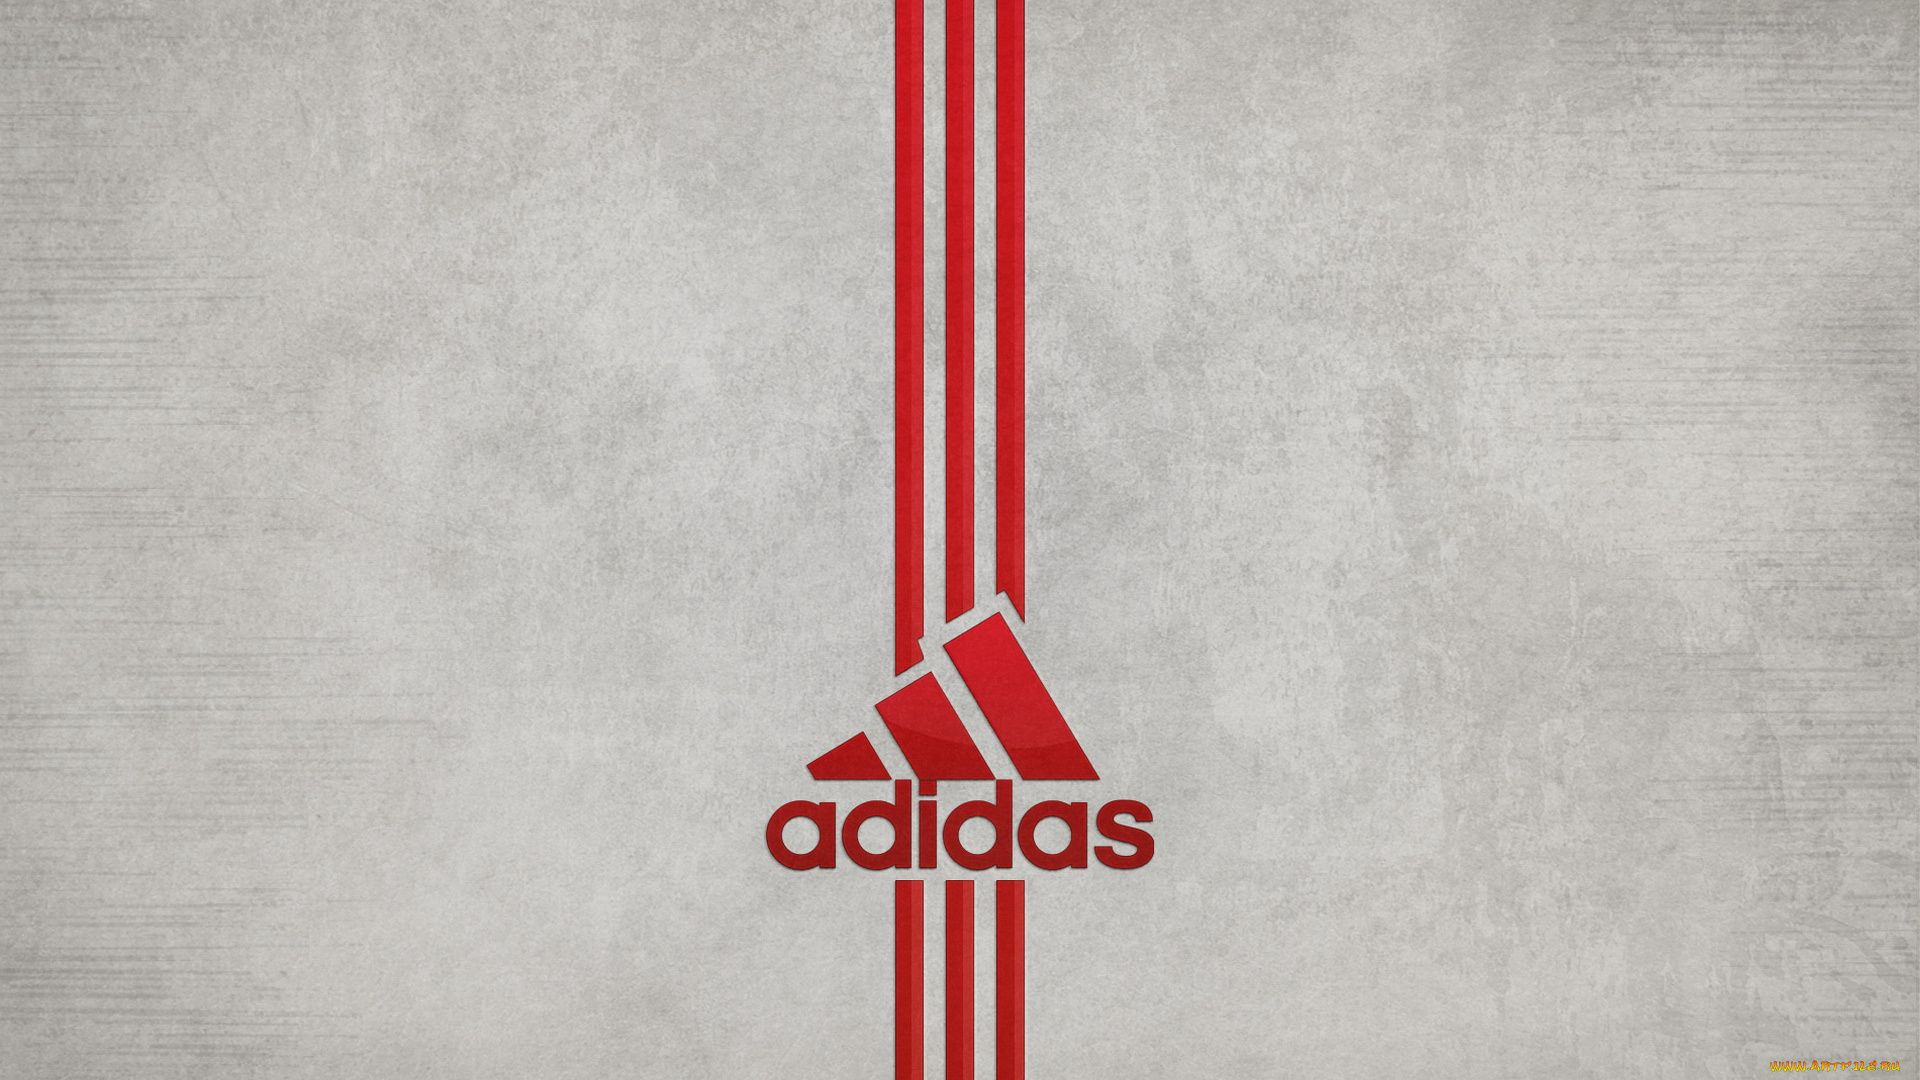 Wallpapers Adidas Iphone 1